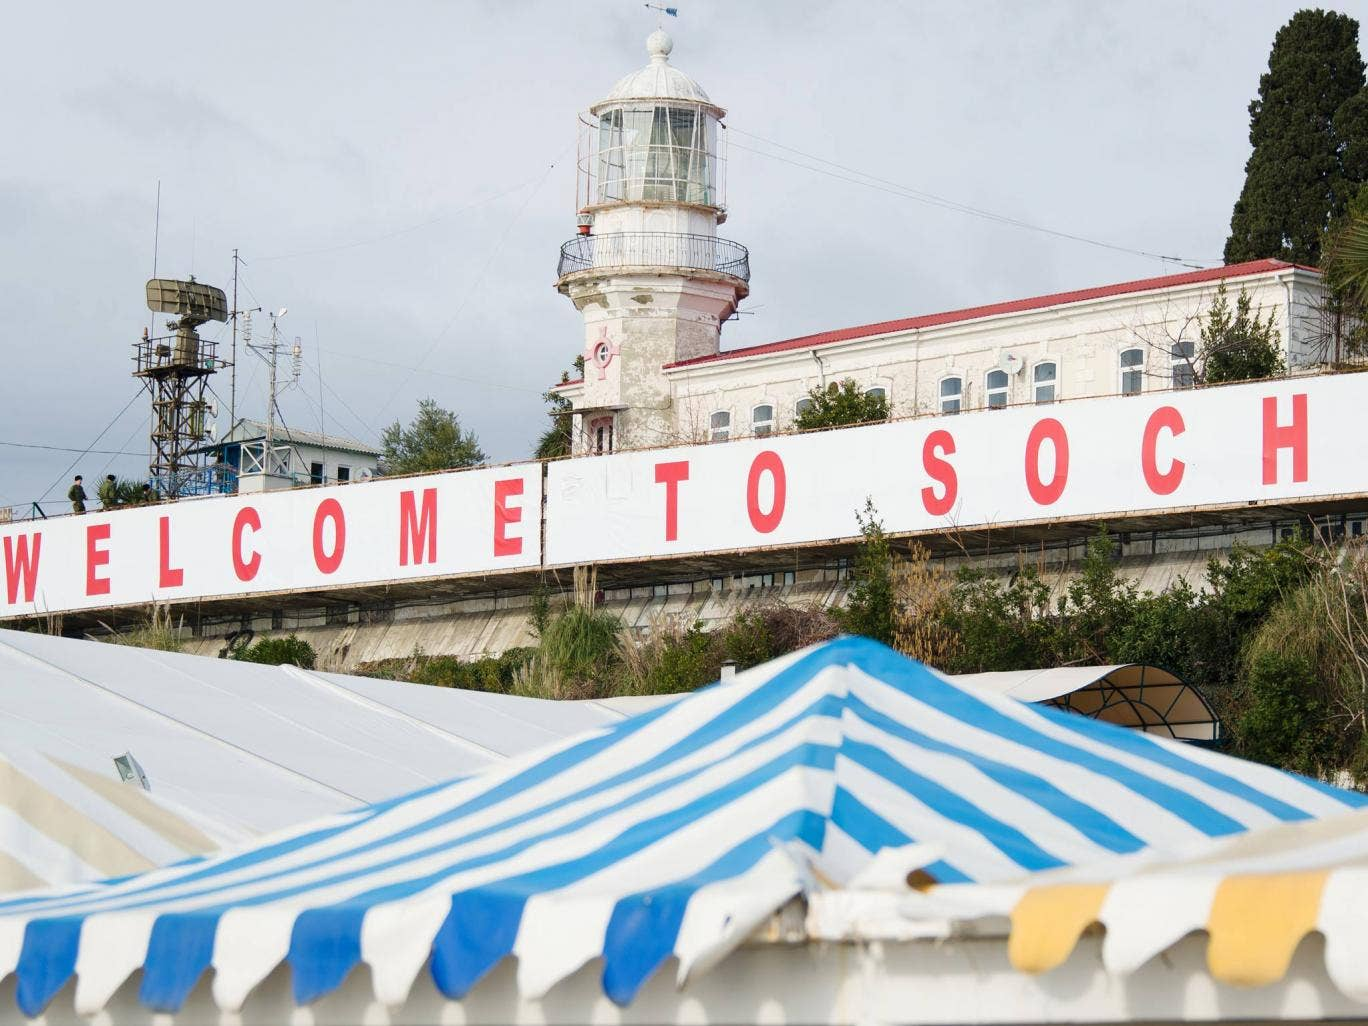 A large 'Welcome to Sochi!' sign hangs above the waterfront area in central Sochi